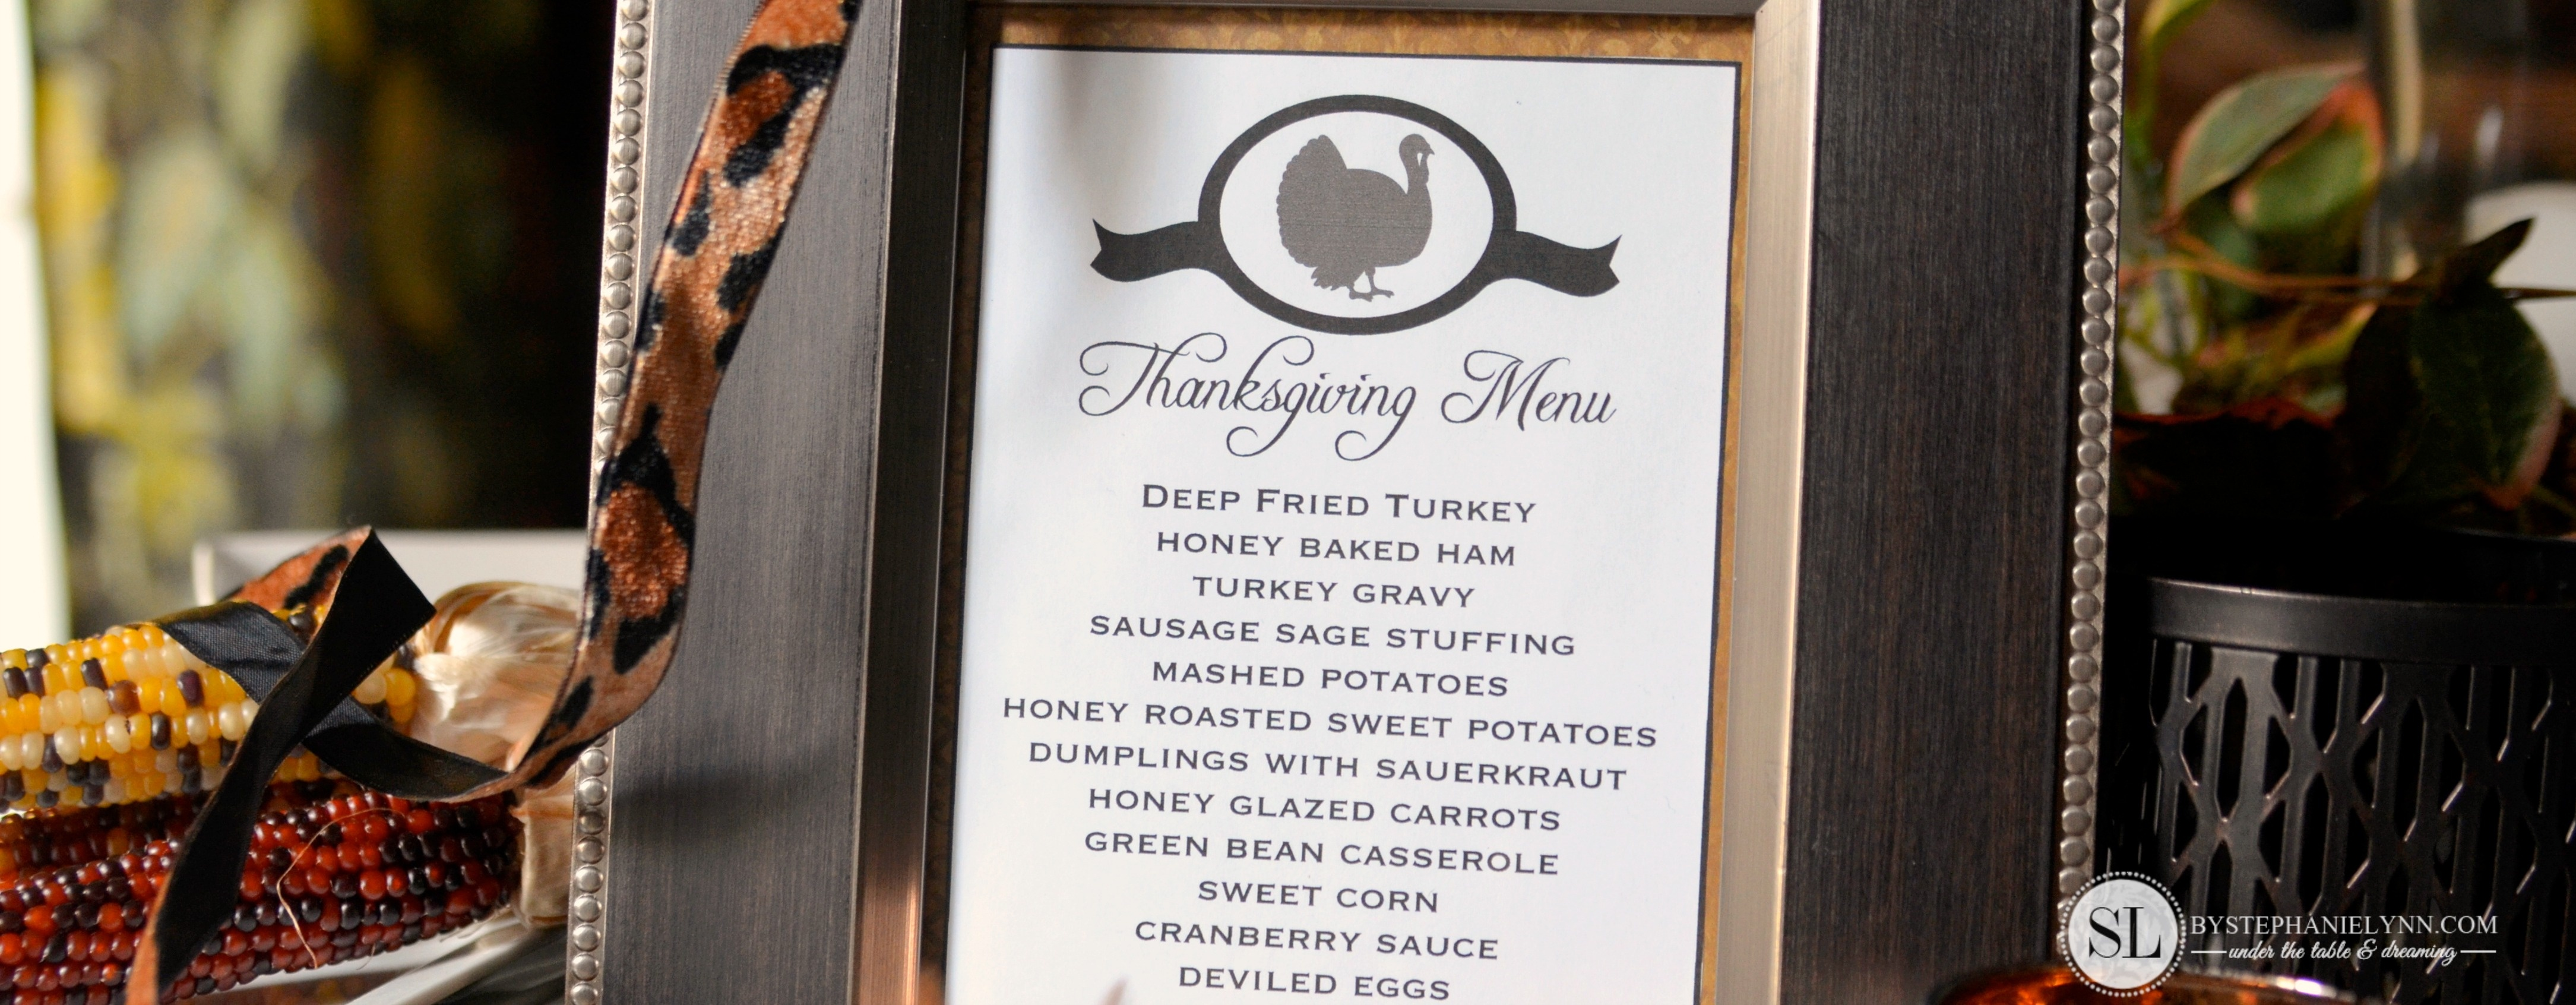 Printable Thanksgiving Menu Template | Making Printables With The - Free Printable Thanksgiving Menu Template